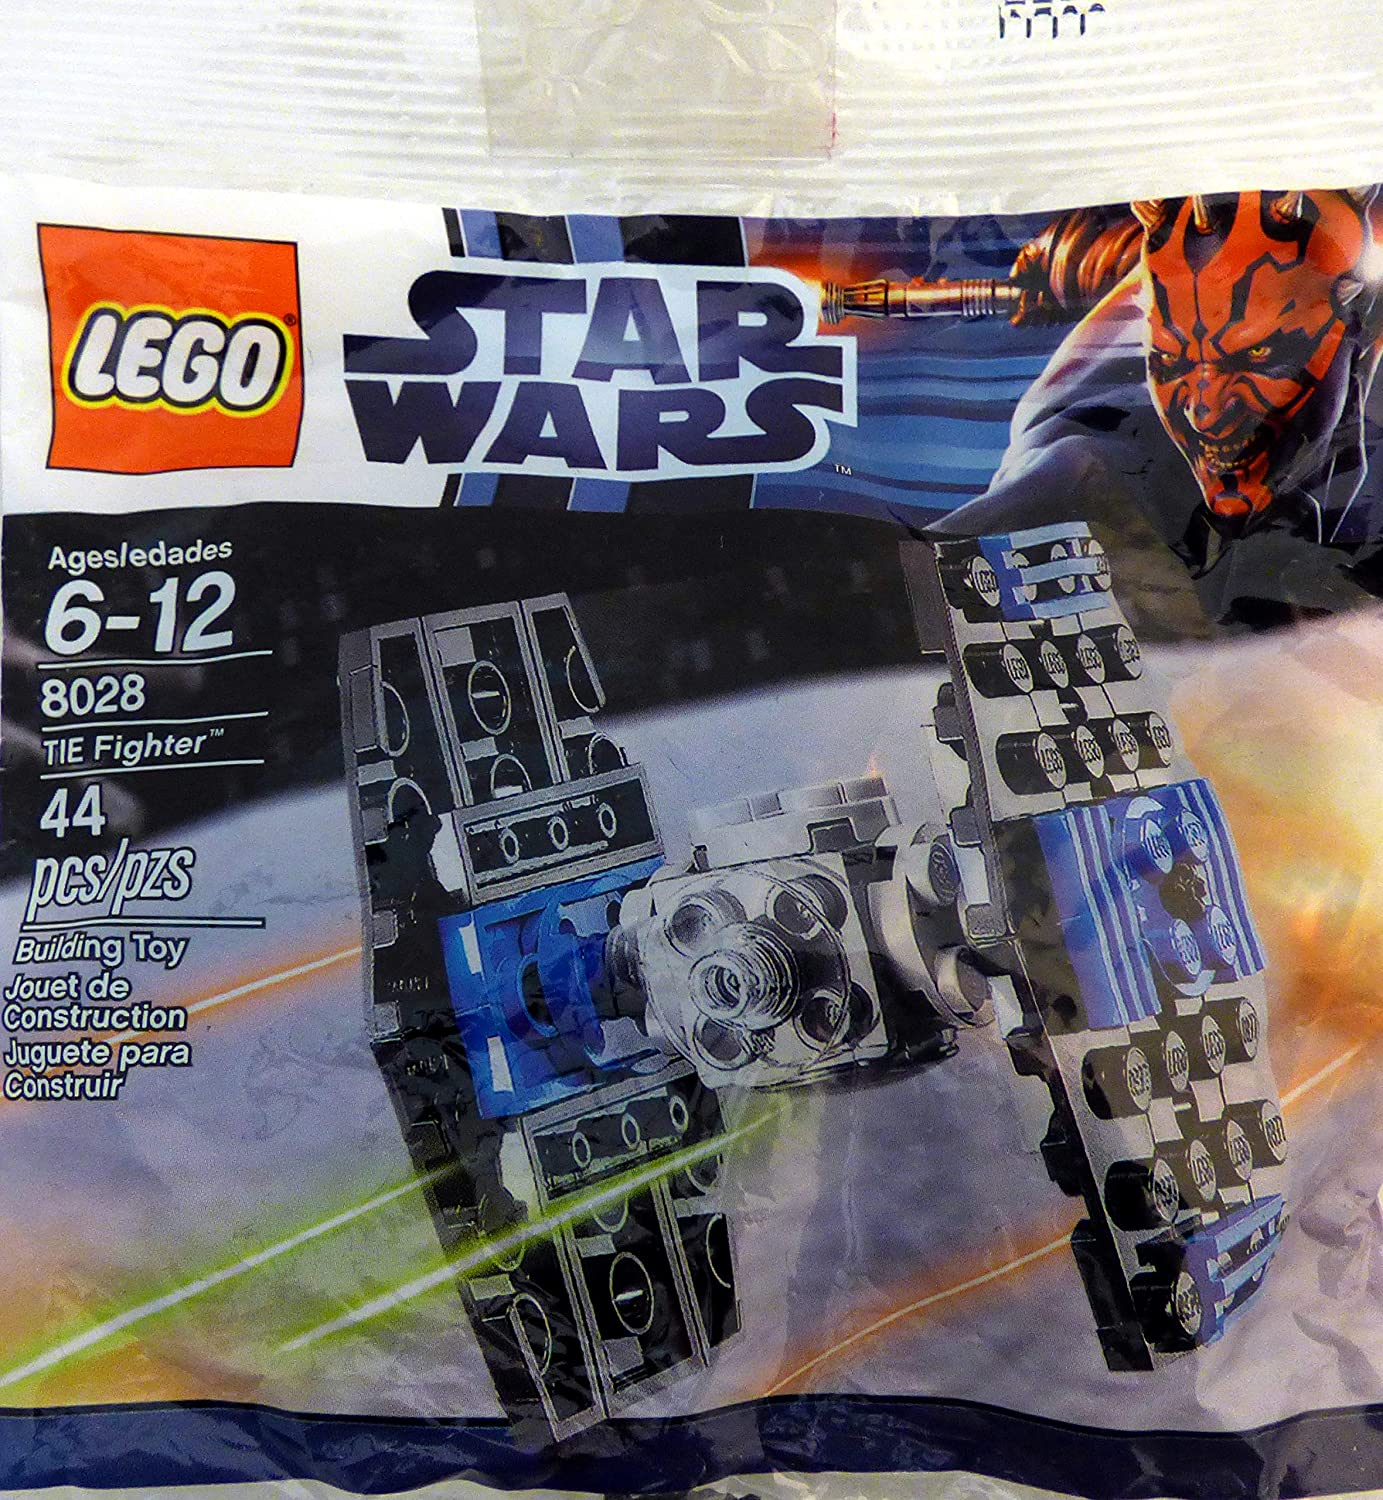 Bagged LEGO Star Wars Mini TIE-Fighter Polybag Set 8028